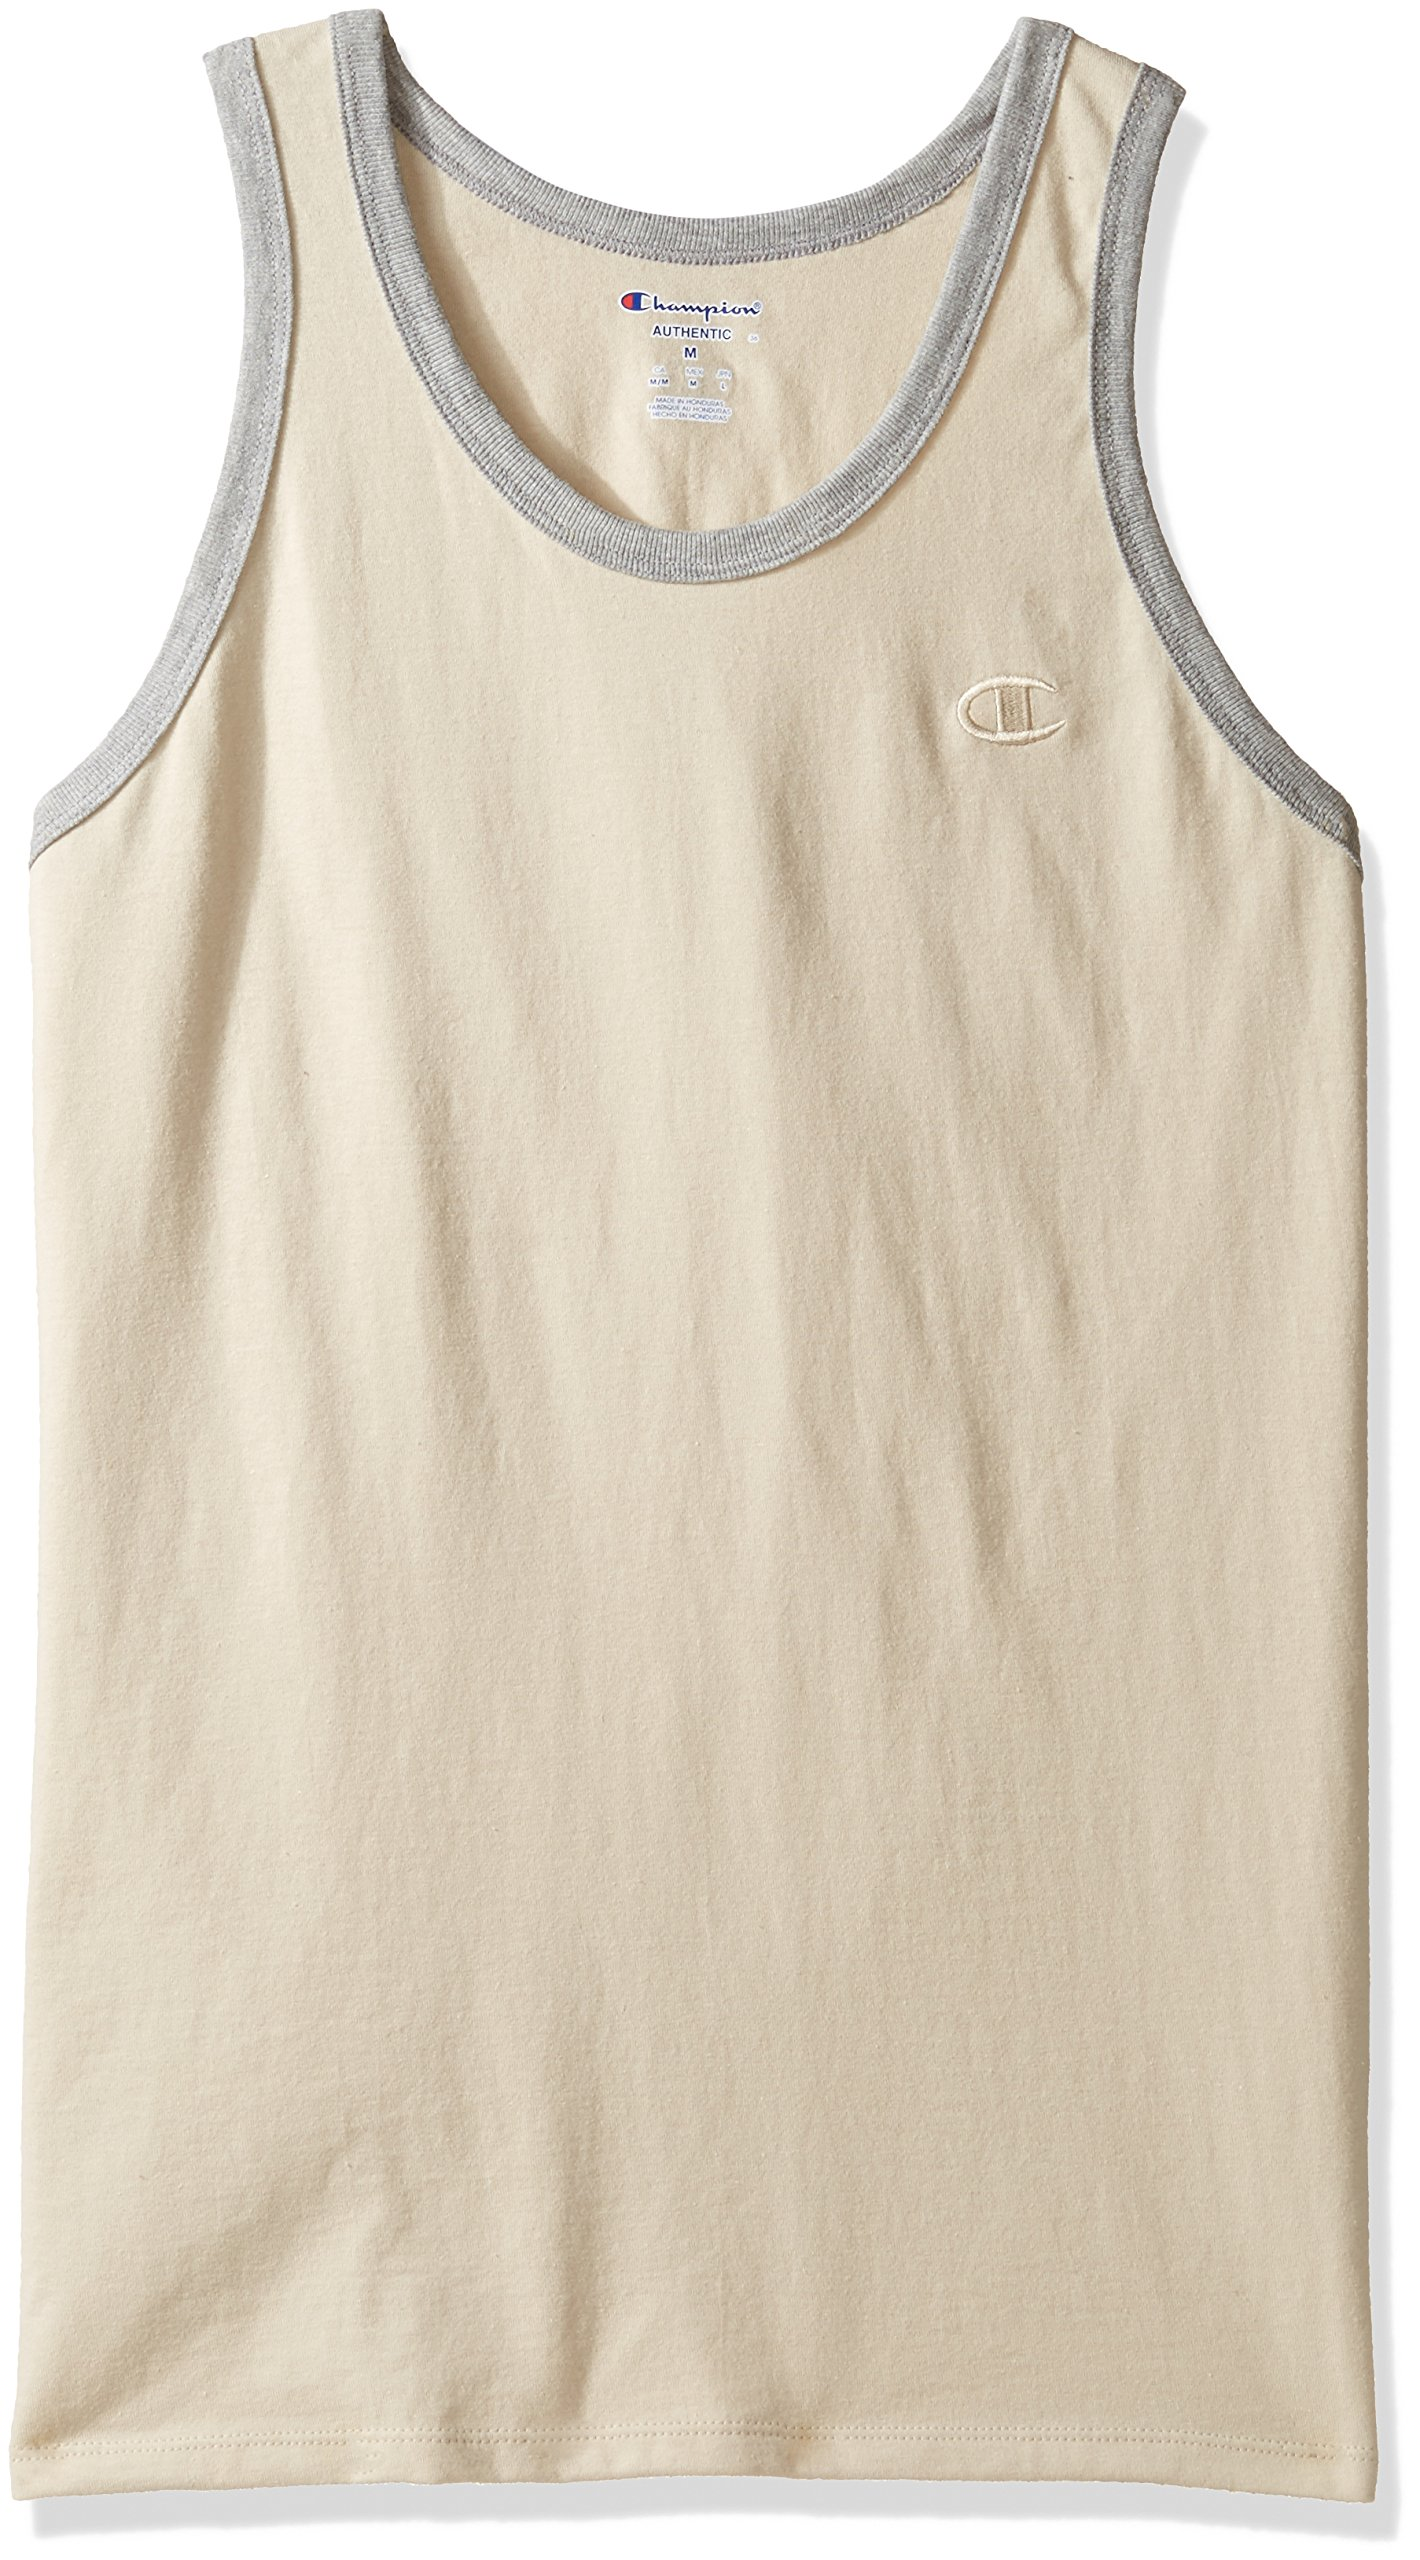 Champion Mens Classic Jersey Ringer Tank Top Puddy Sand Oxford 02 Kaos Bola Distro Gray Heather